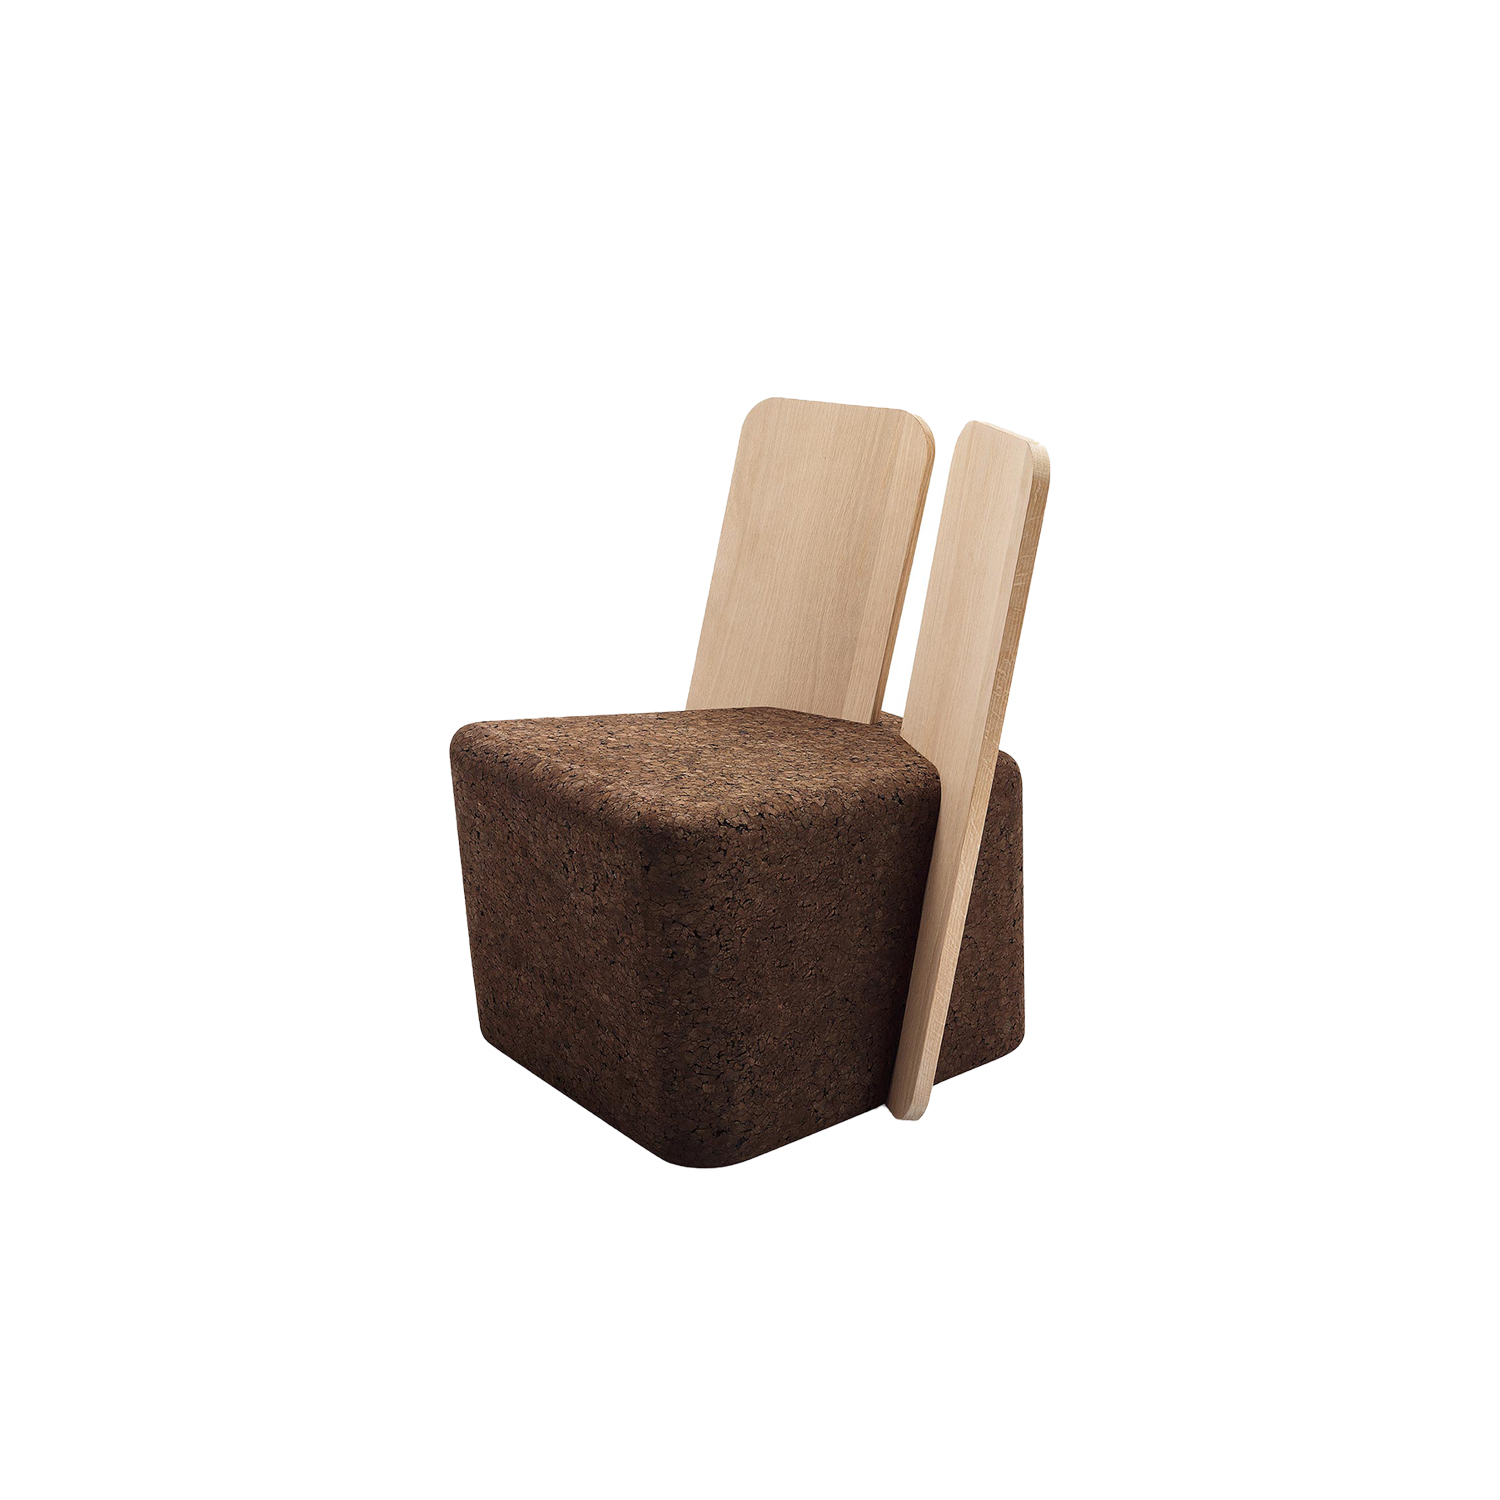 """Cut Lounge Chair - It is only used cork of the branches (falca) for the manufacture of cork granules. These are block clusters in autoclave, being 100% natural process, without use of additives. Technology, developed by Sofalca, consists of injecting water vapour through the pallets that will expand and agglutinate with the resins of the cork itself. This """"cooking"""" gives also dark colour to the agglomerated cork, like chocolate. In the production of steam I used biomass, obtained on milling and cleaning the falca, what makes it truly ecological production and without waste, 95% energy self-sufficient. As a super-material, cork offers so many advantages, because in addition to its excellent thermic, acoustic insulation and anti vibration characteristic, it is also a CO2 sink playing a key-role in the environment. 